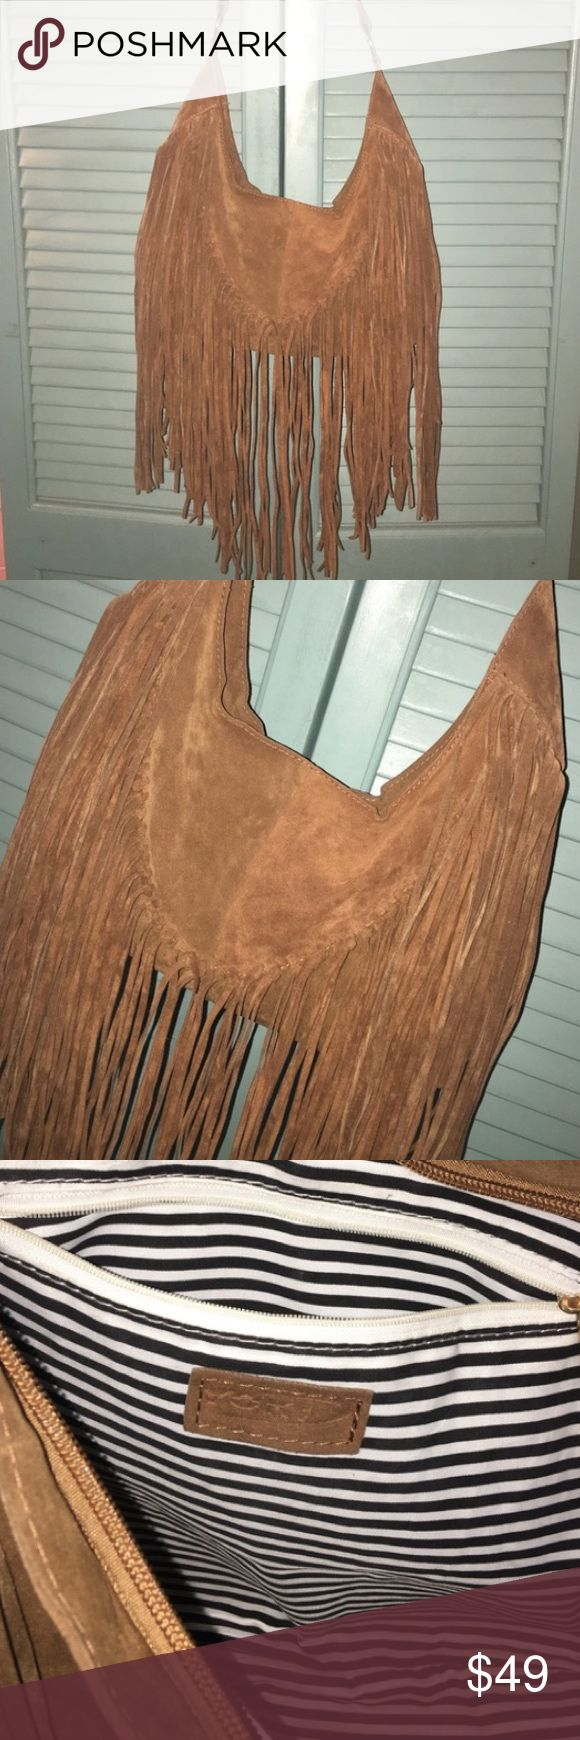 Leather fringe boho hobo bag Brown leather fringe bag with long cross body strap that is adjustable. In excellent condition, very boho and great for festivals, holds a lot! Bags Crossbody Bags